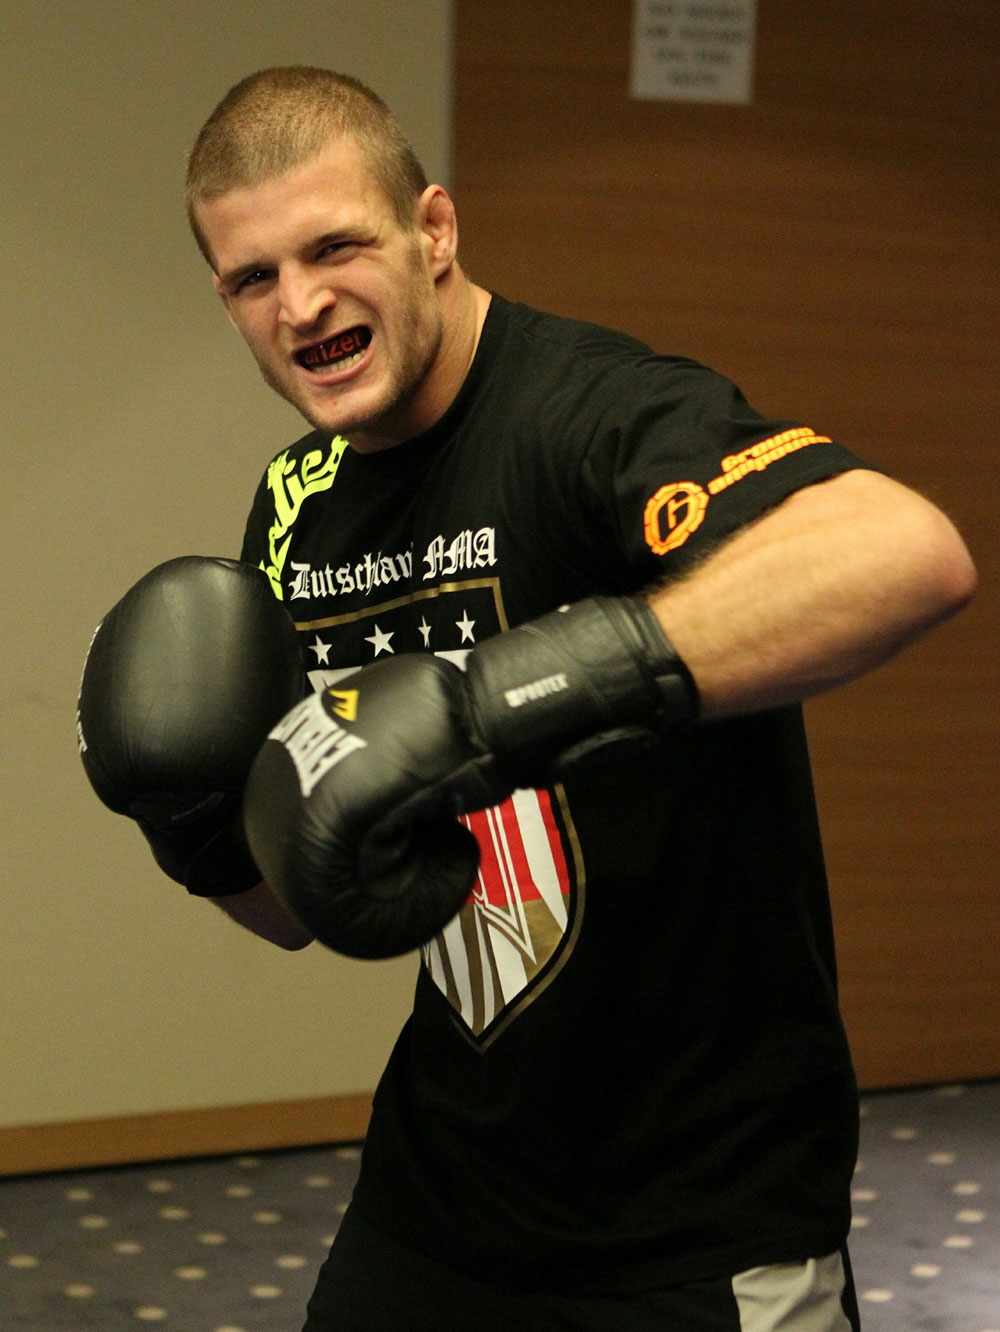 UFC welterweight Pascal Krauss